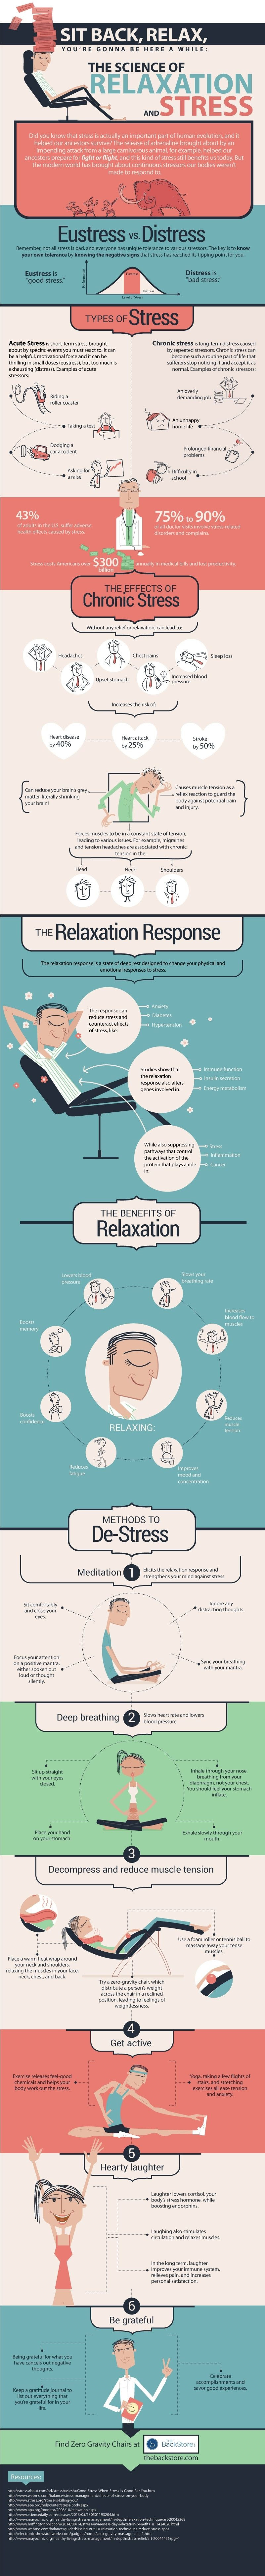 Infographic: The Science of Relaxation and Stress